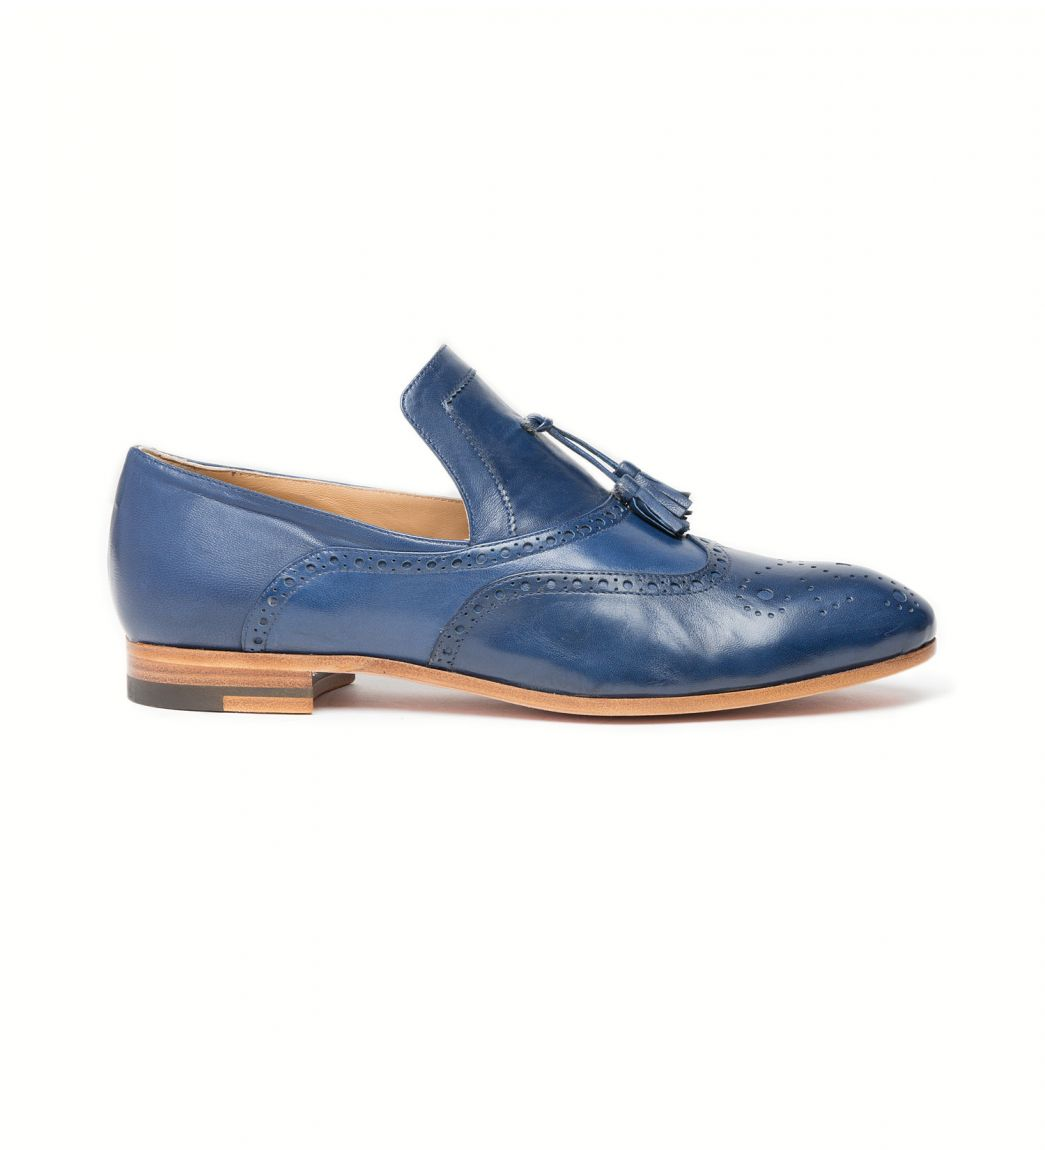 loafer-blue-testoni_f400061-98068-ryy_01.jpg